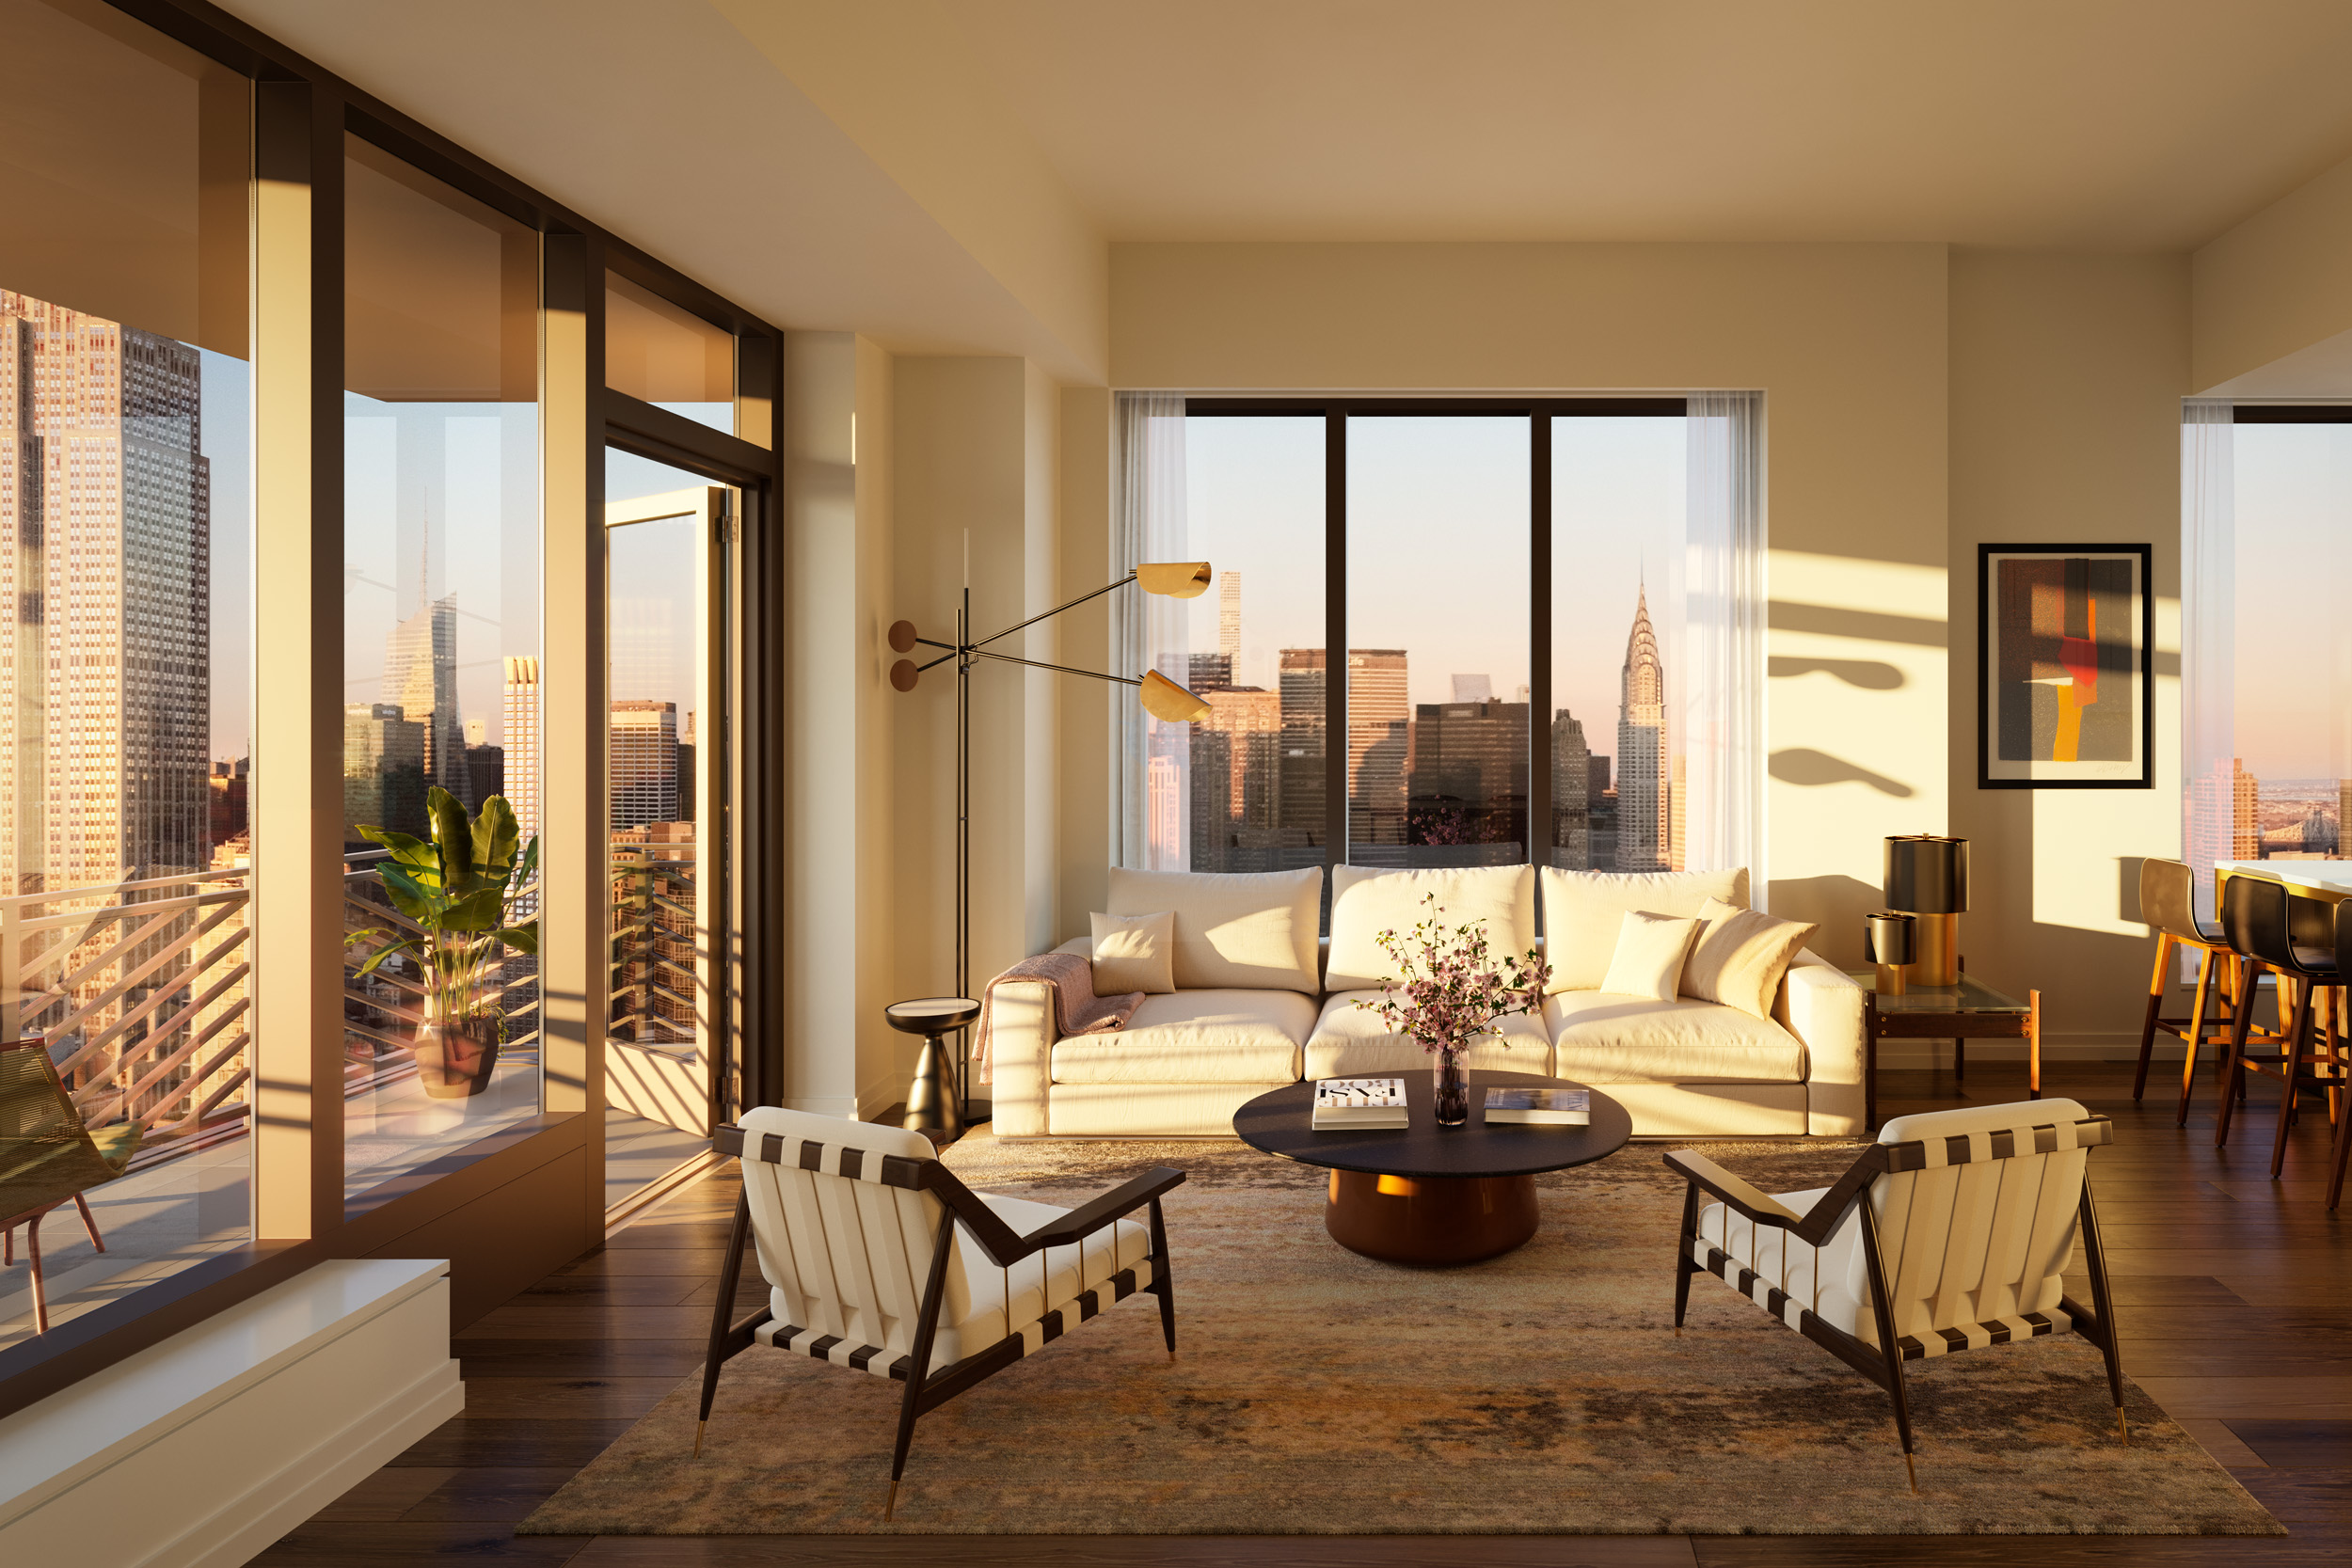 recent_spaces_rose_hill_nyc_07.jpg